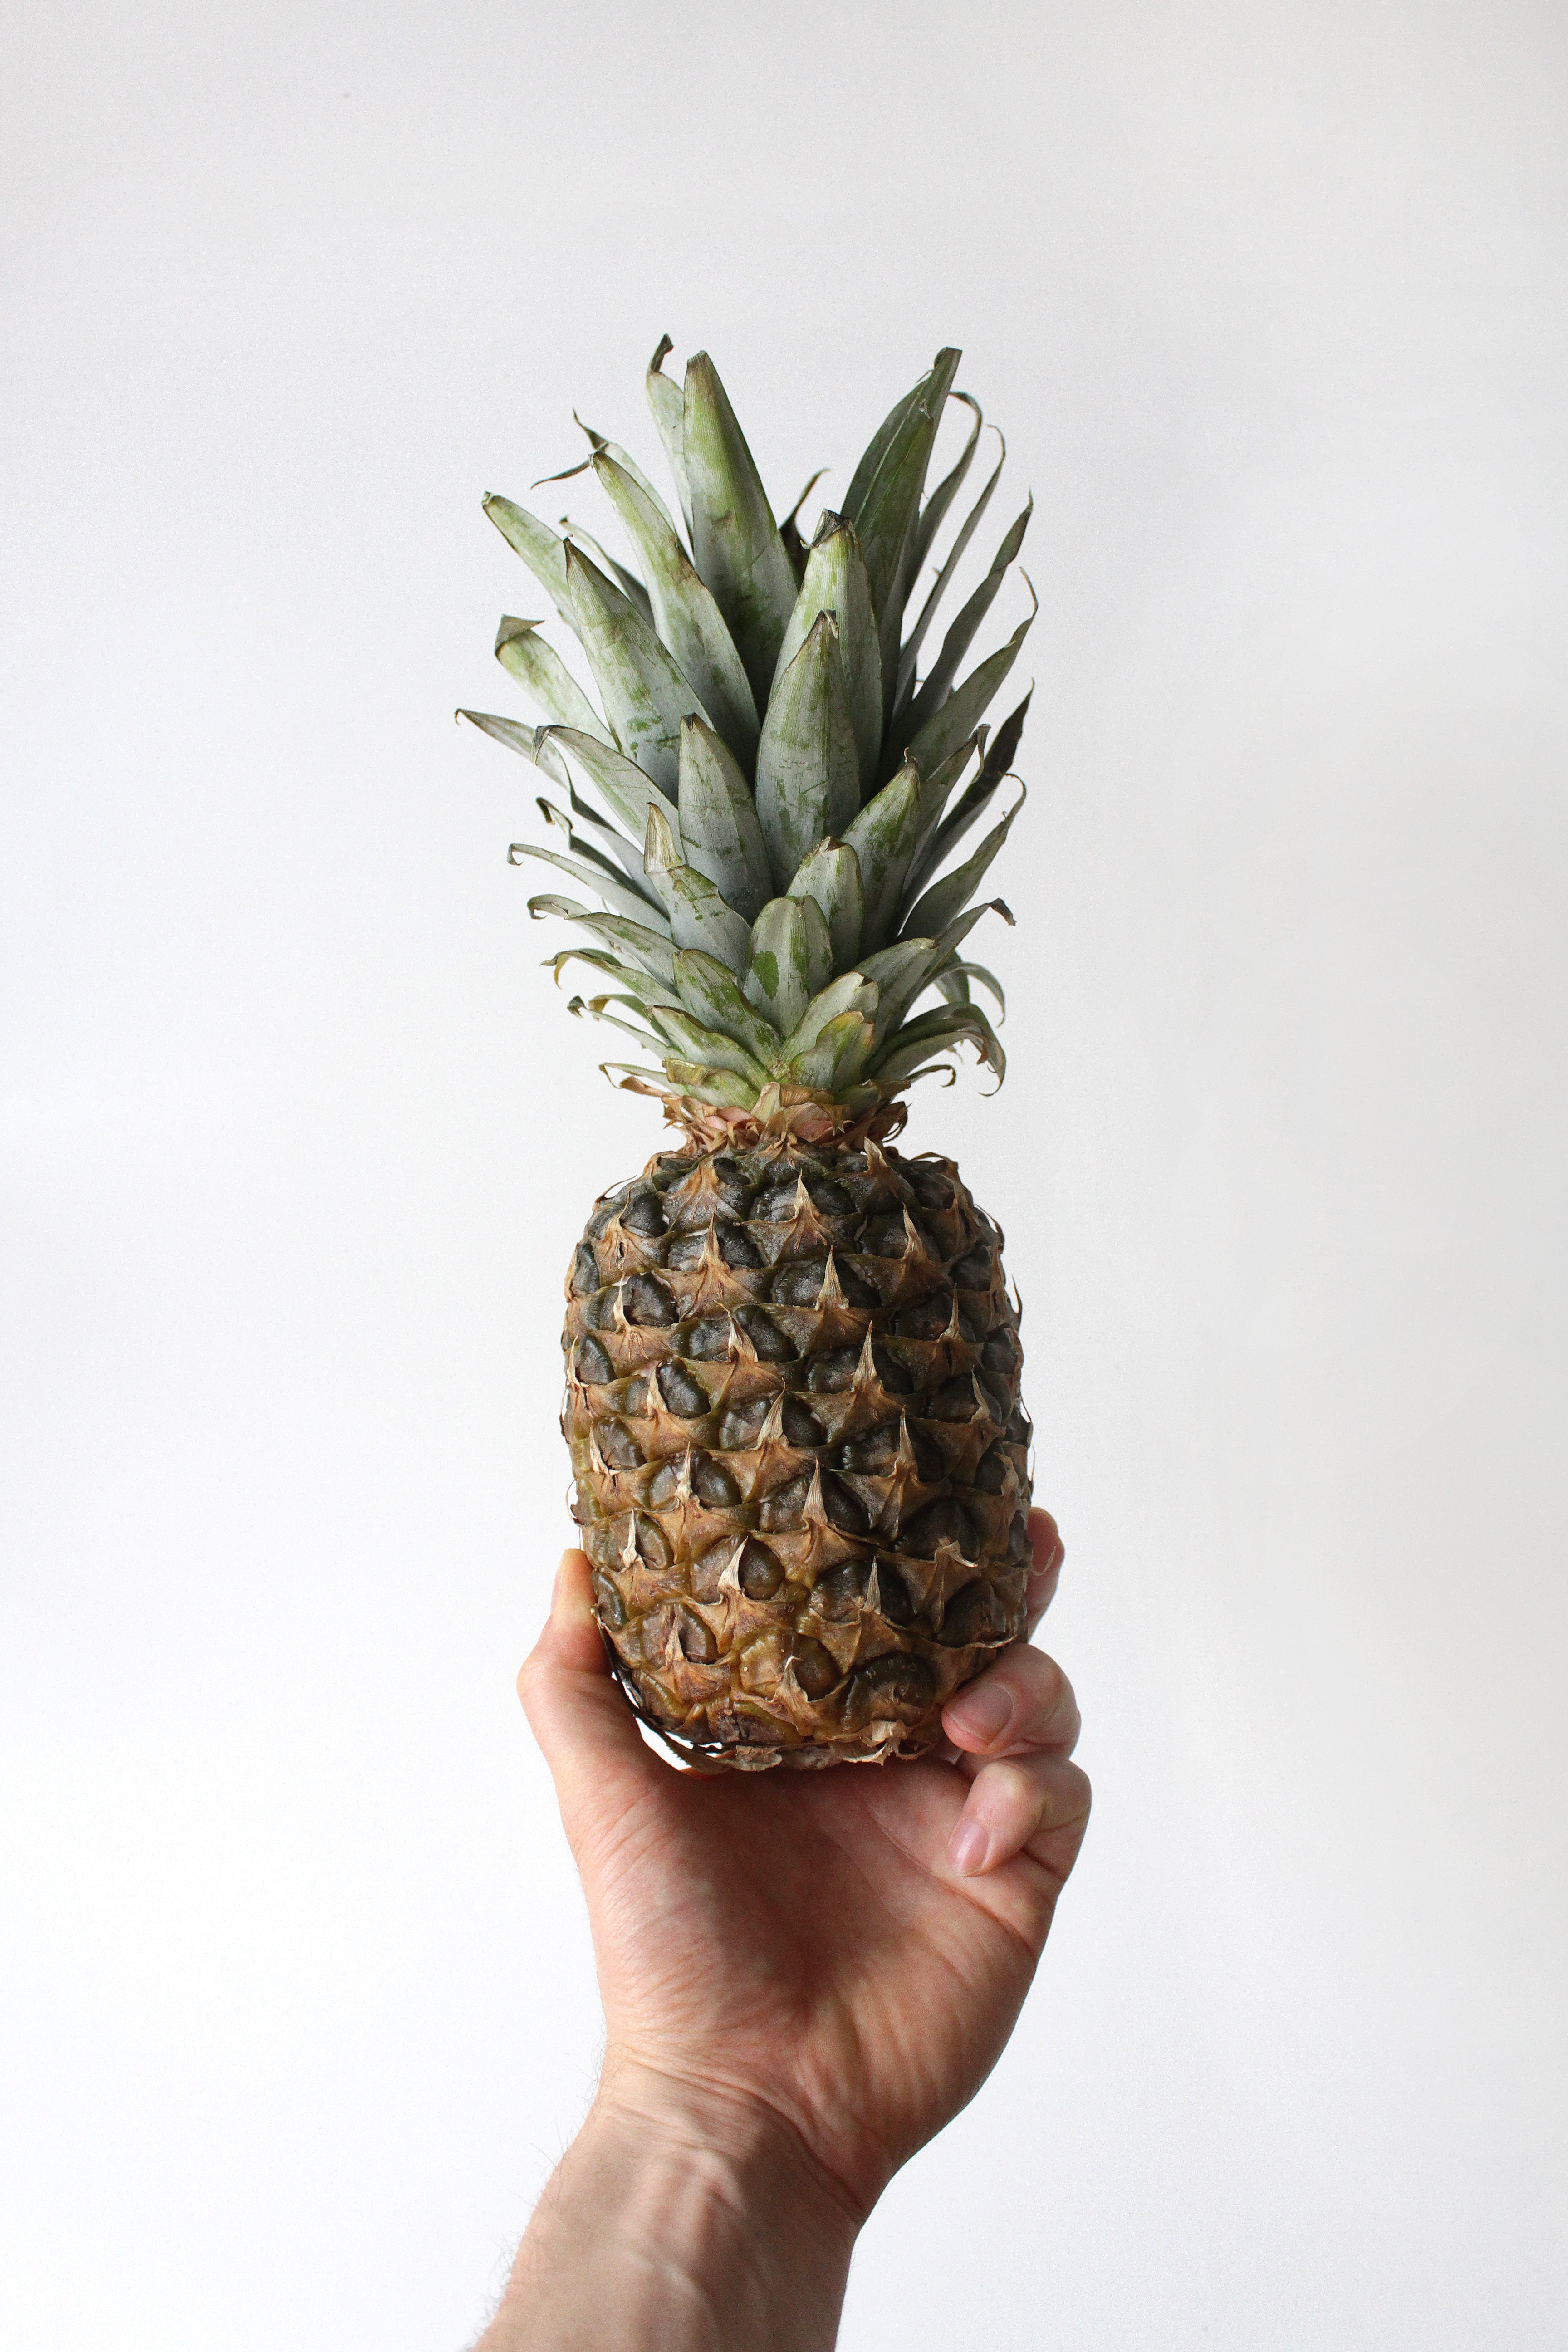 Hand holding a delicious pineapple.